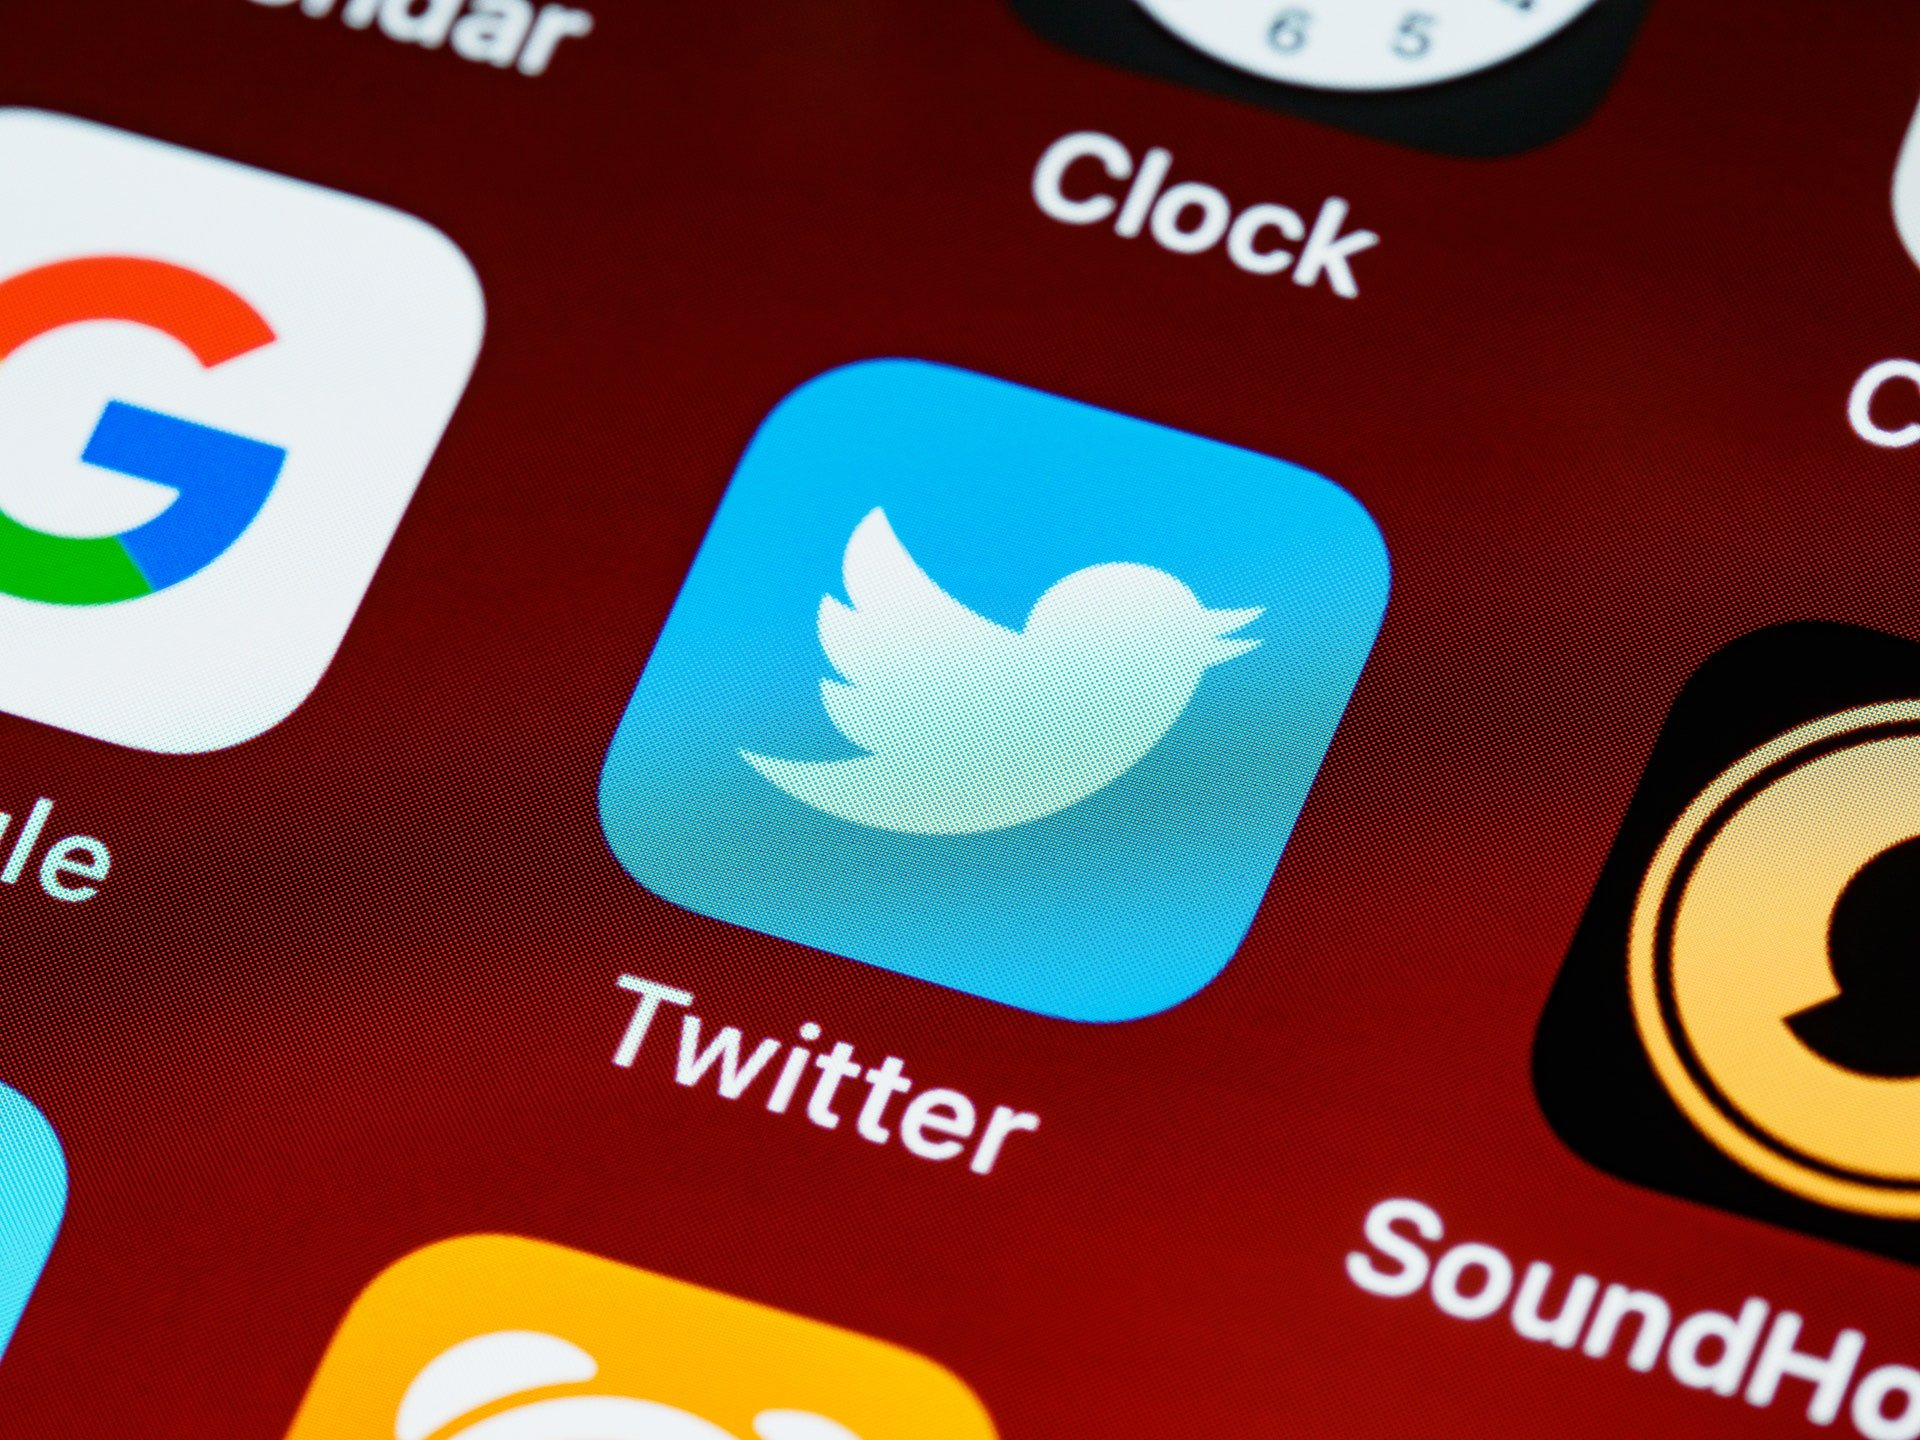 A photograph of a phone screen with Twitter on it